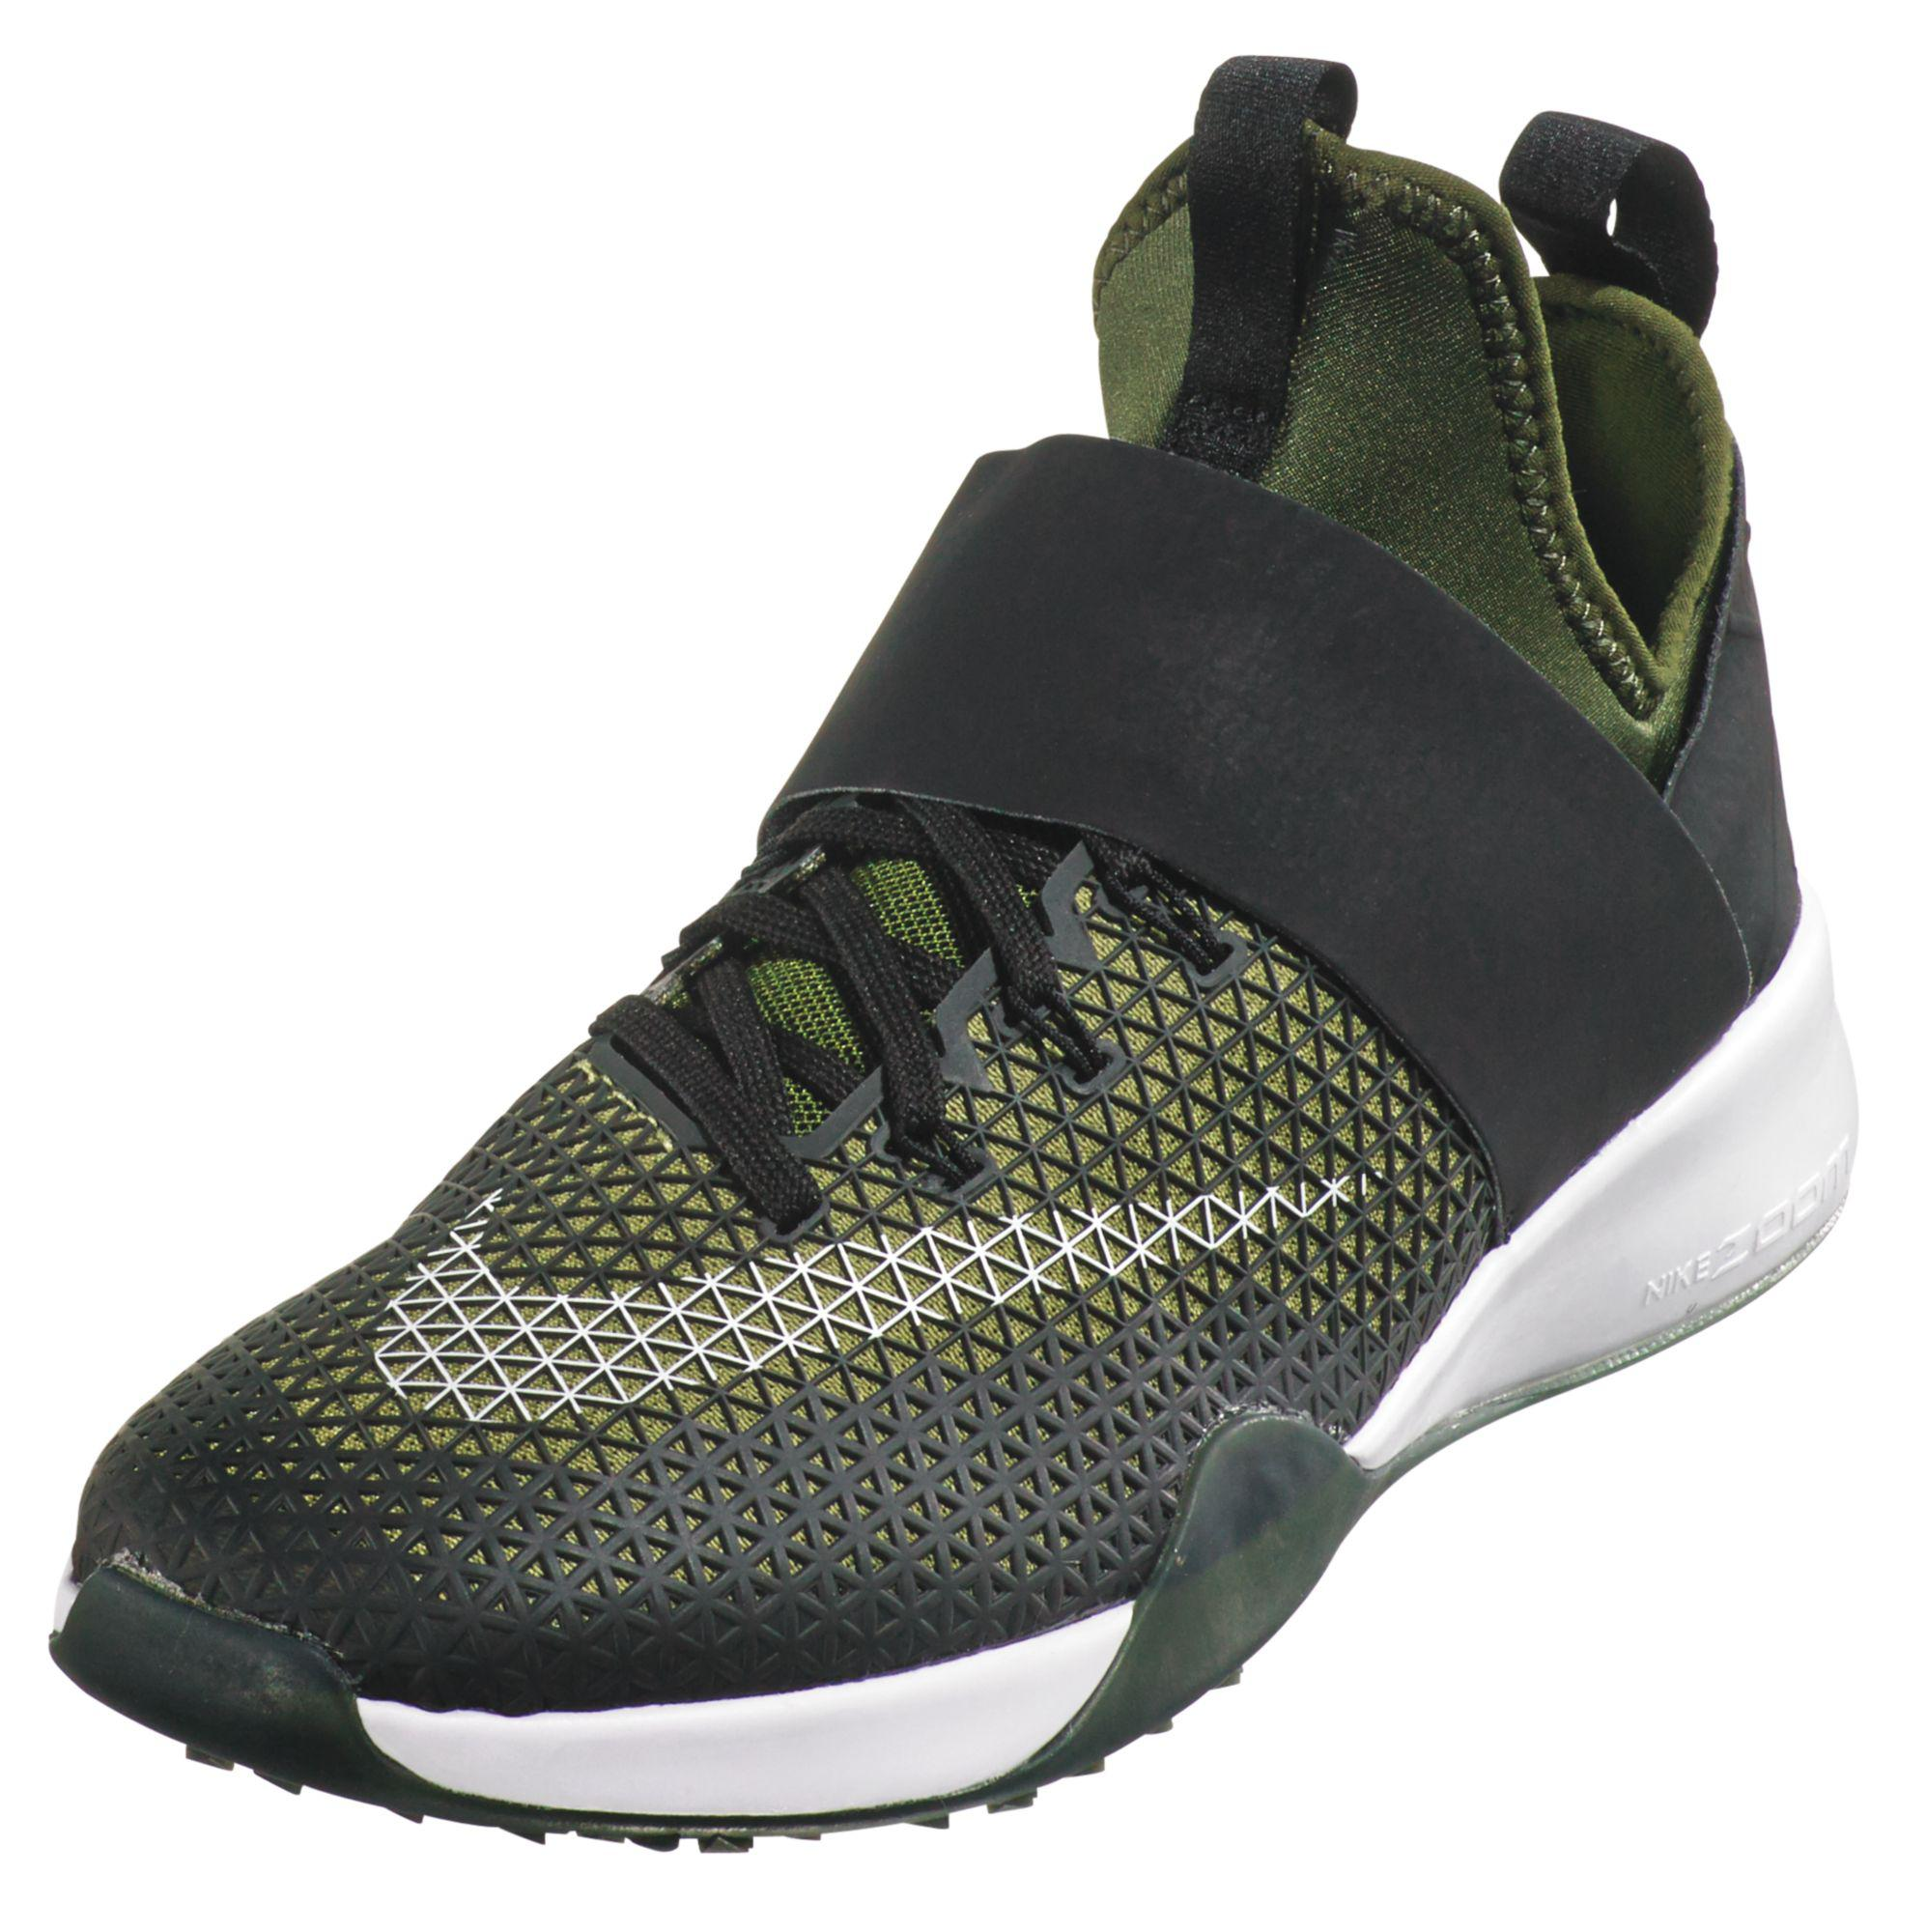 ad8dc7bdee40d Lyst - Nike Air Zoom Strong Training Shoes in Green for Men